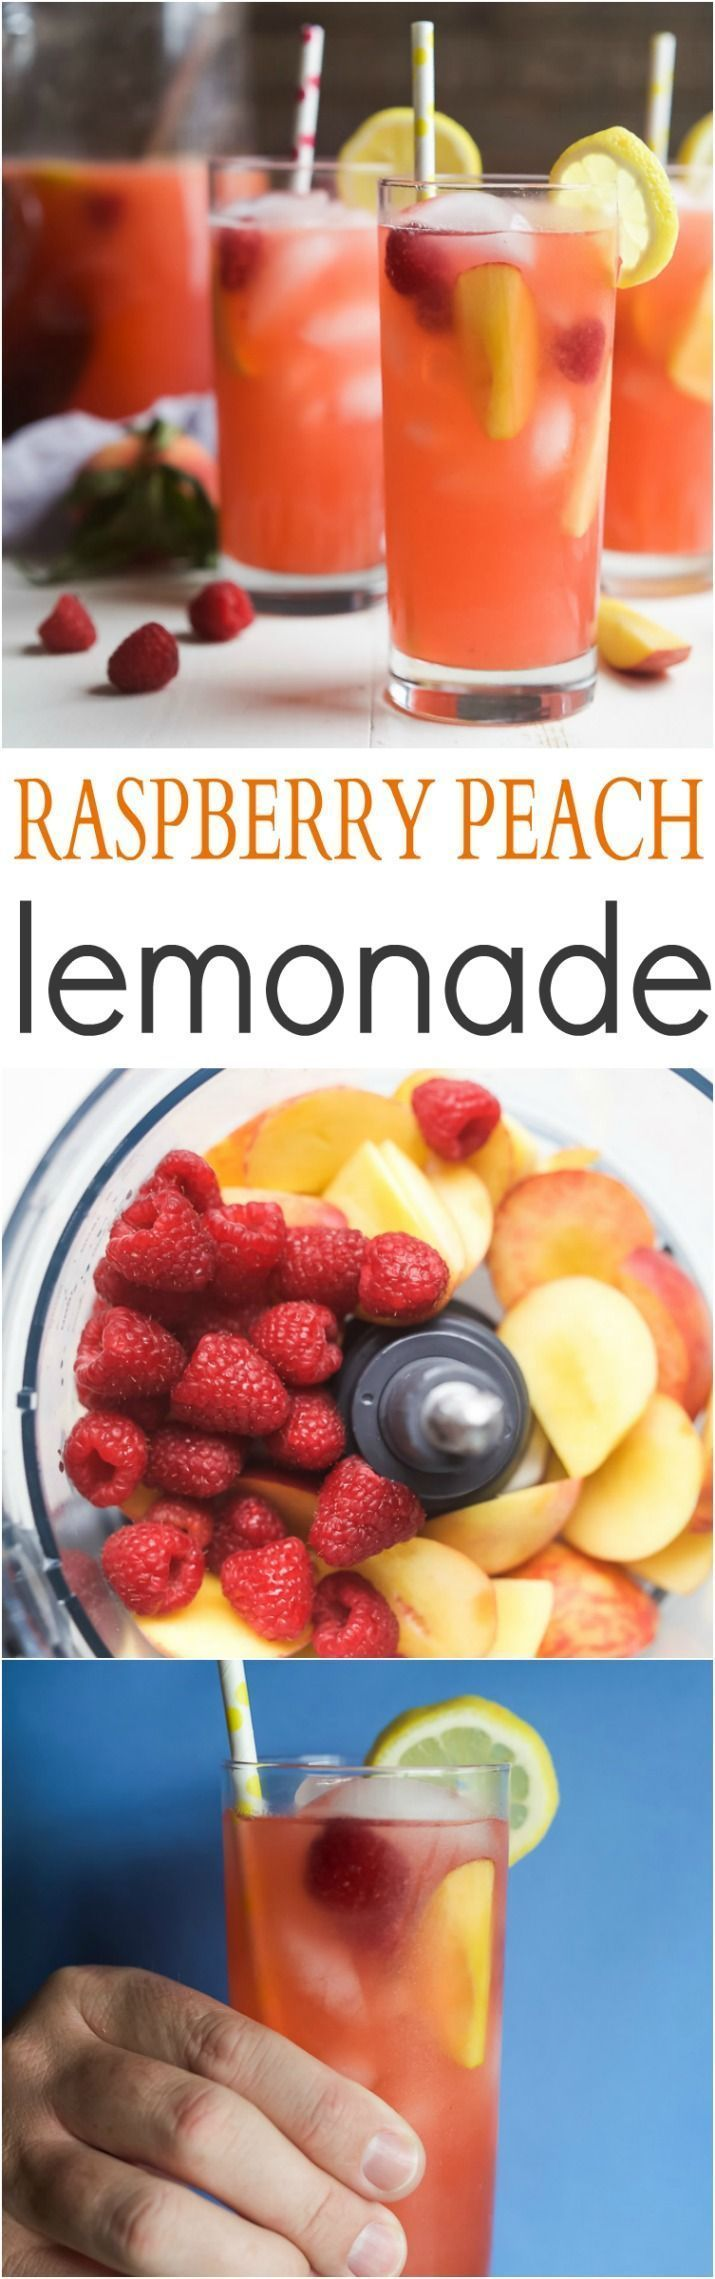 A Homemade Raspberry Peach Lemonade Recipe made with fresh raspberries and peaches for the ultimate refreshing drink to cool you down this summer! | joyfulhealthyeats...